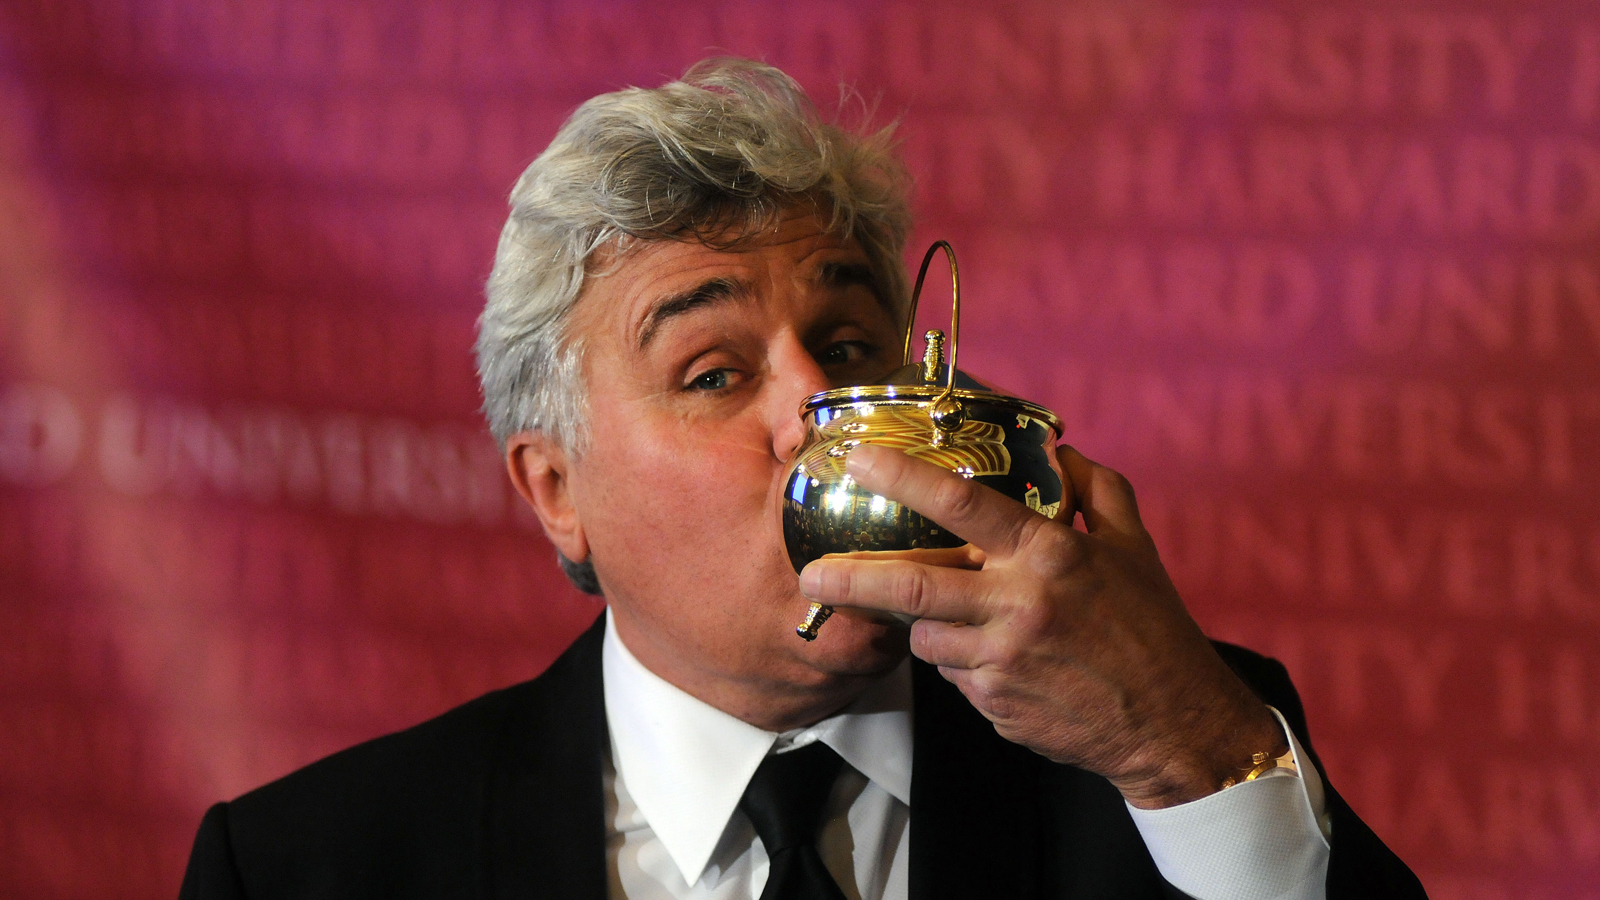 Jay Leno Stole A Guy's YouTube Video And Then Got It Banned